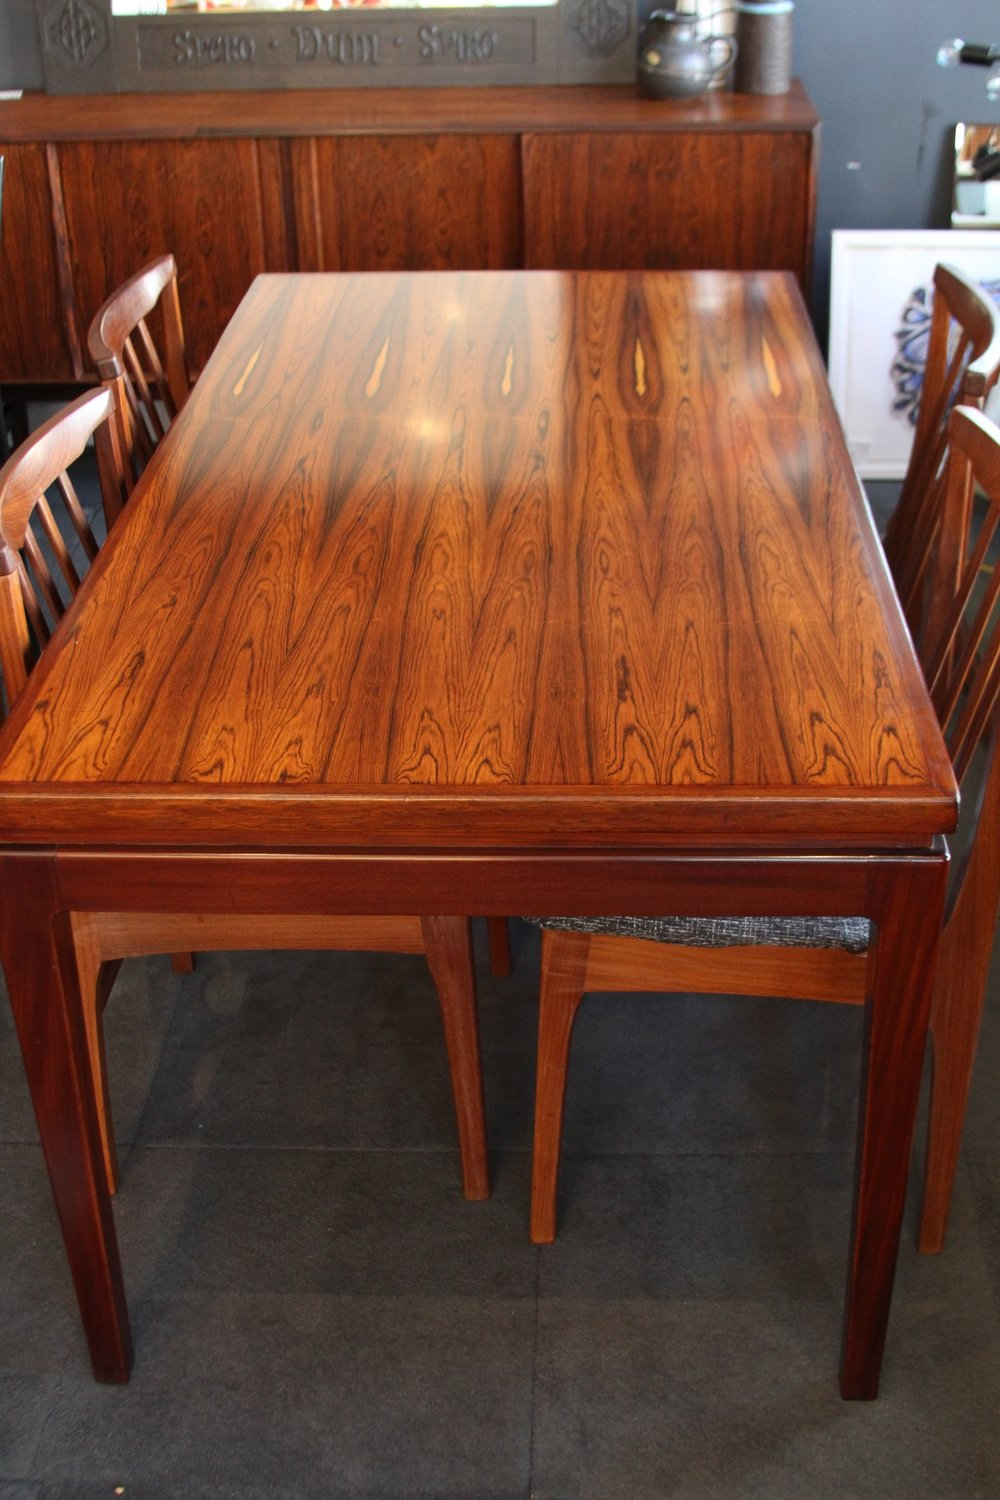 Rosewood Table £750